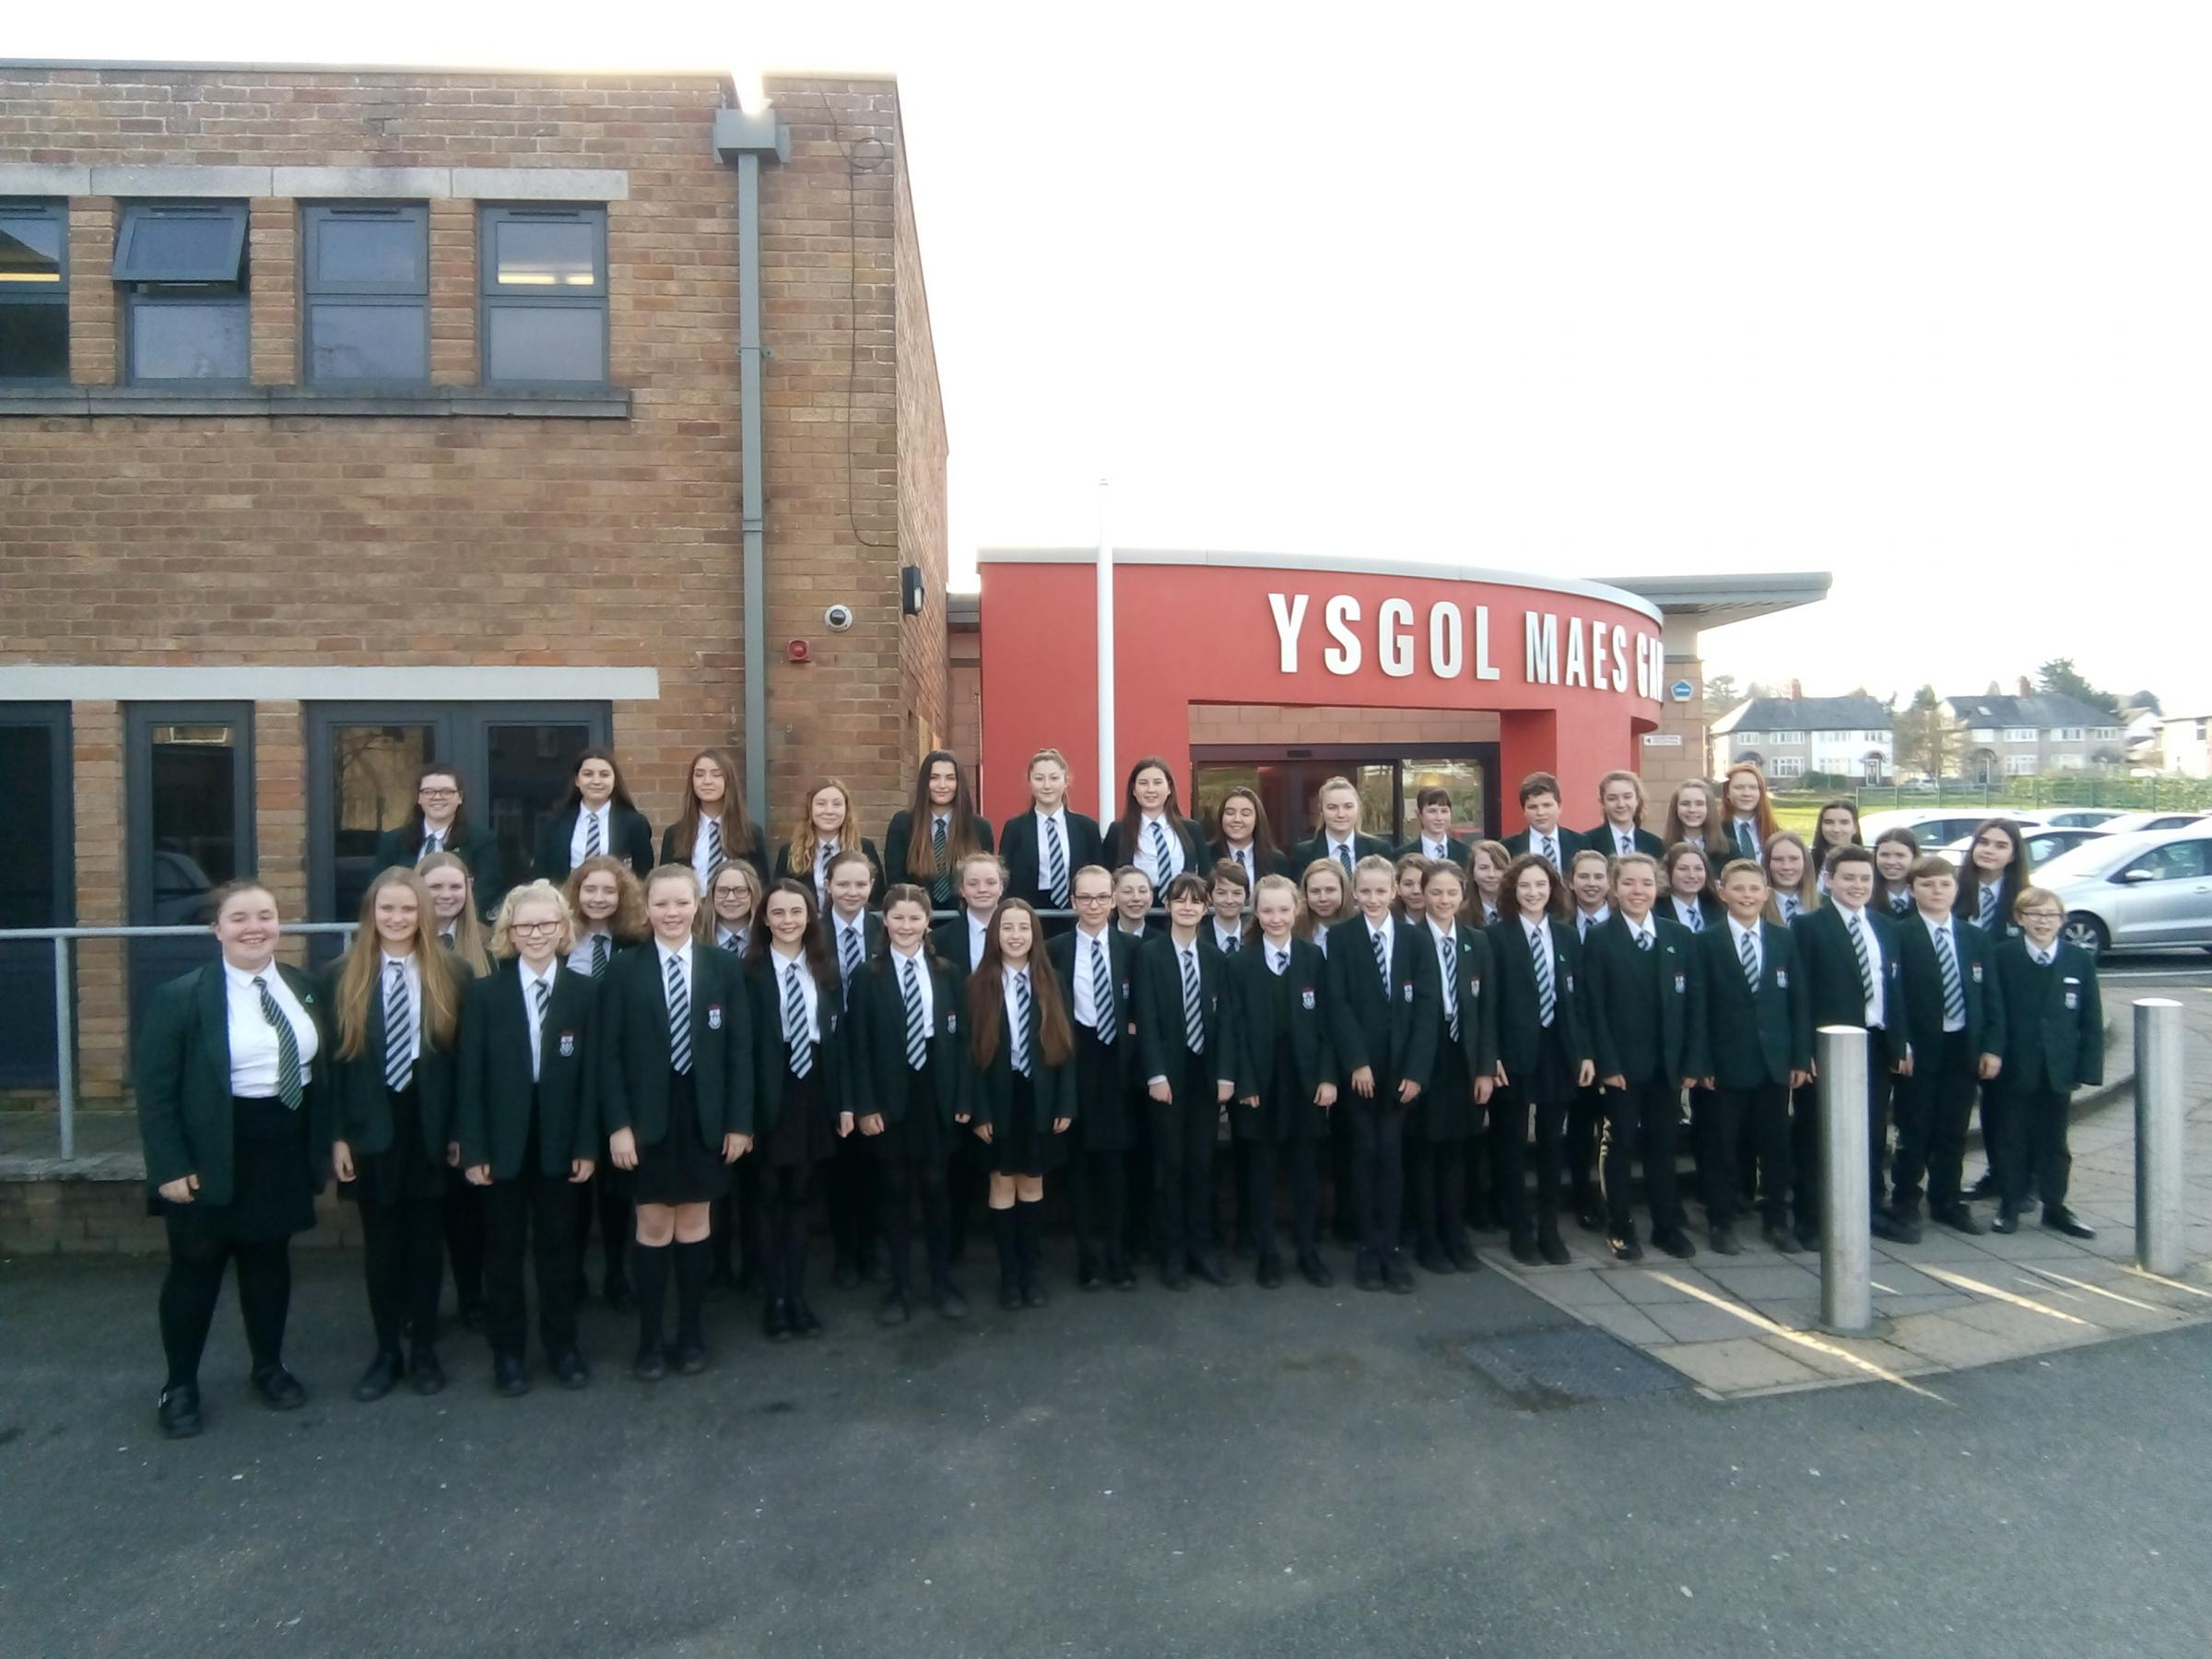 Mold school choir to take part in national competition